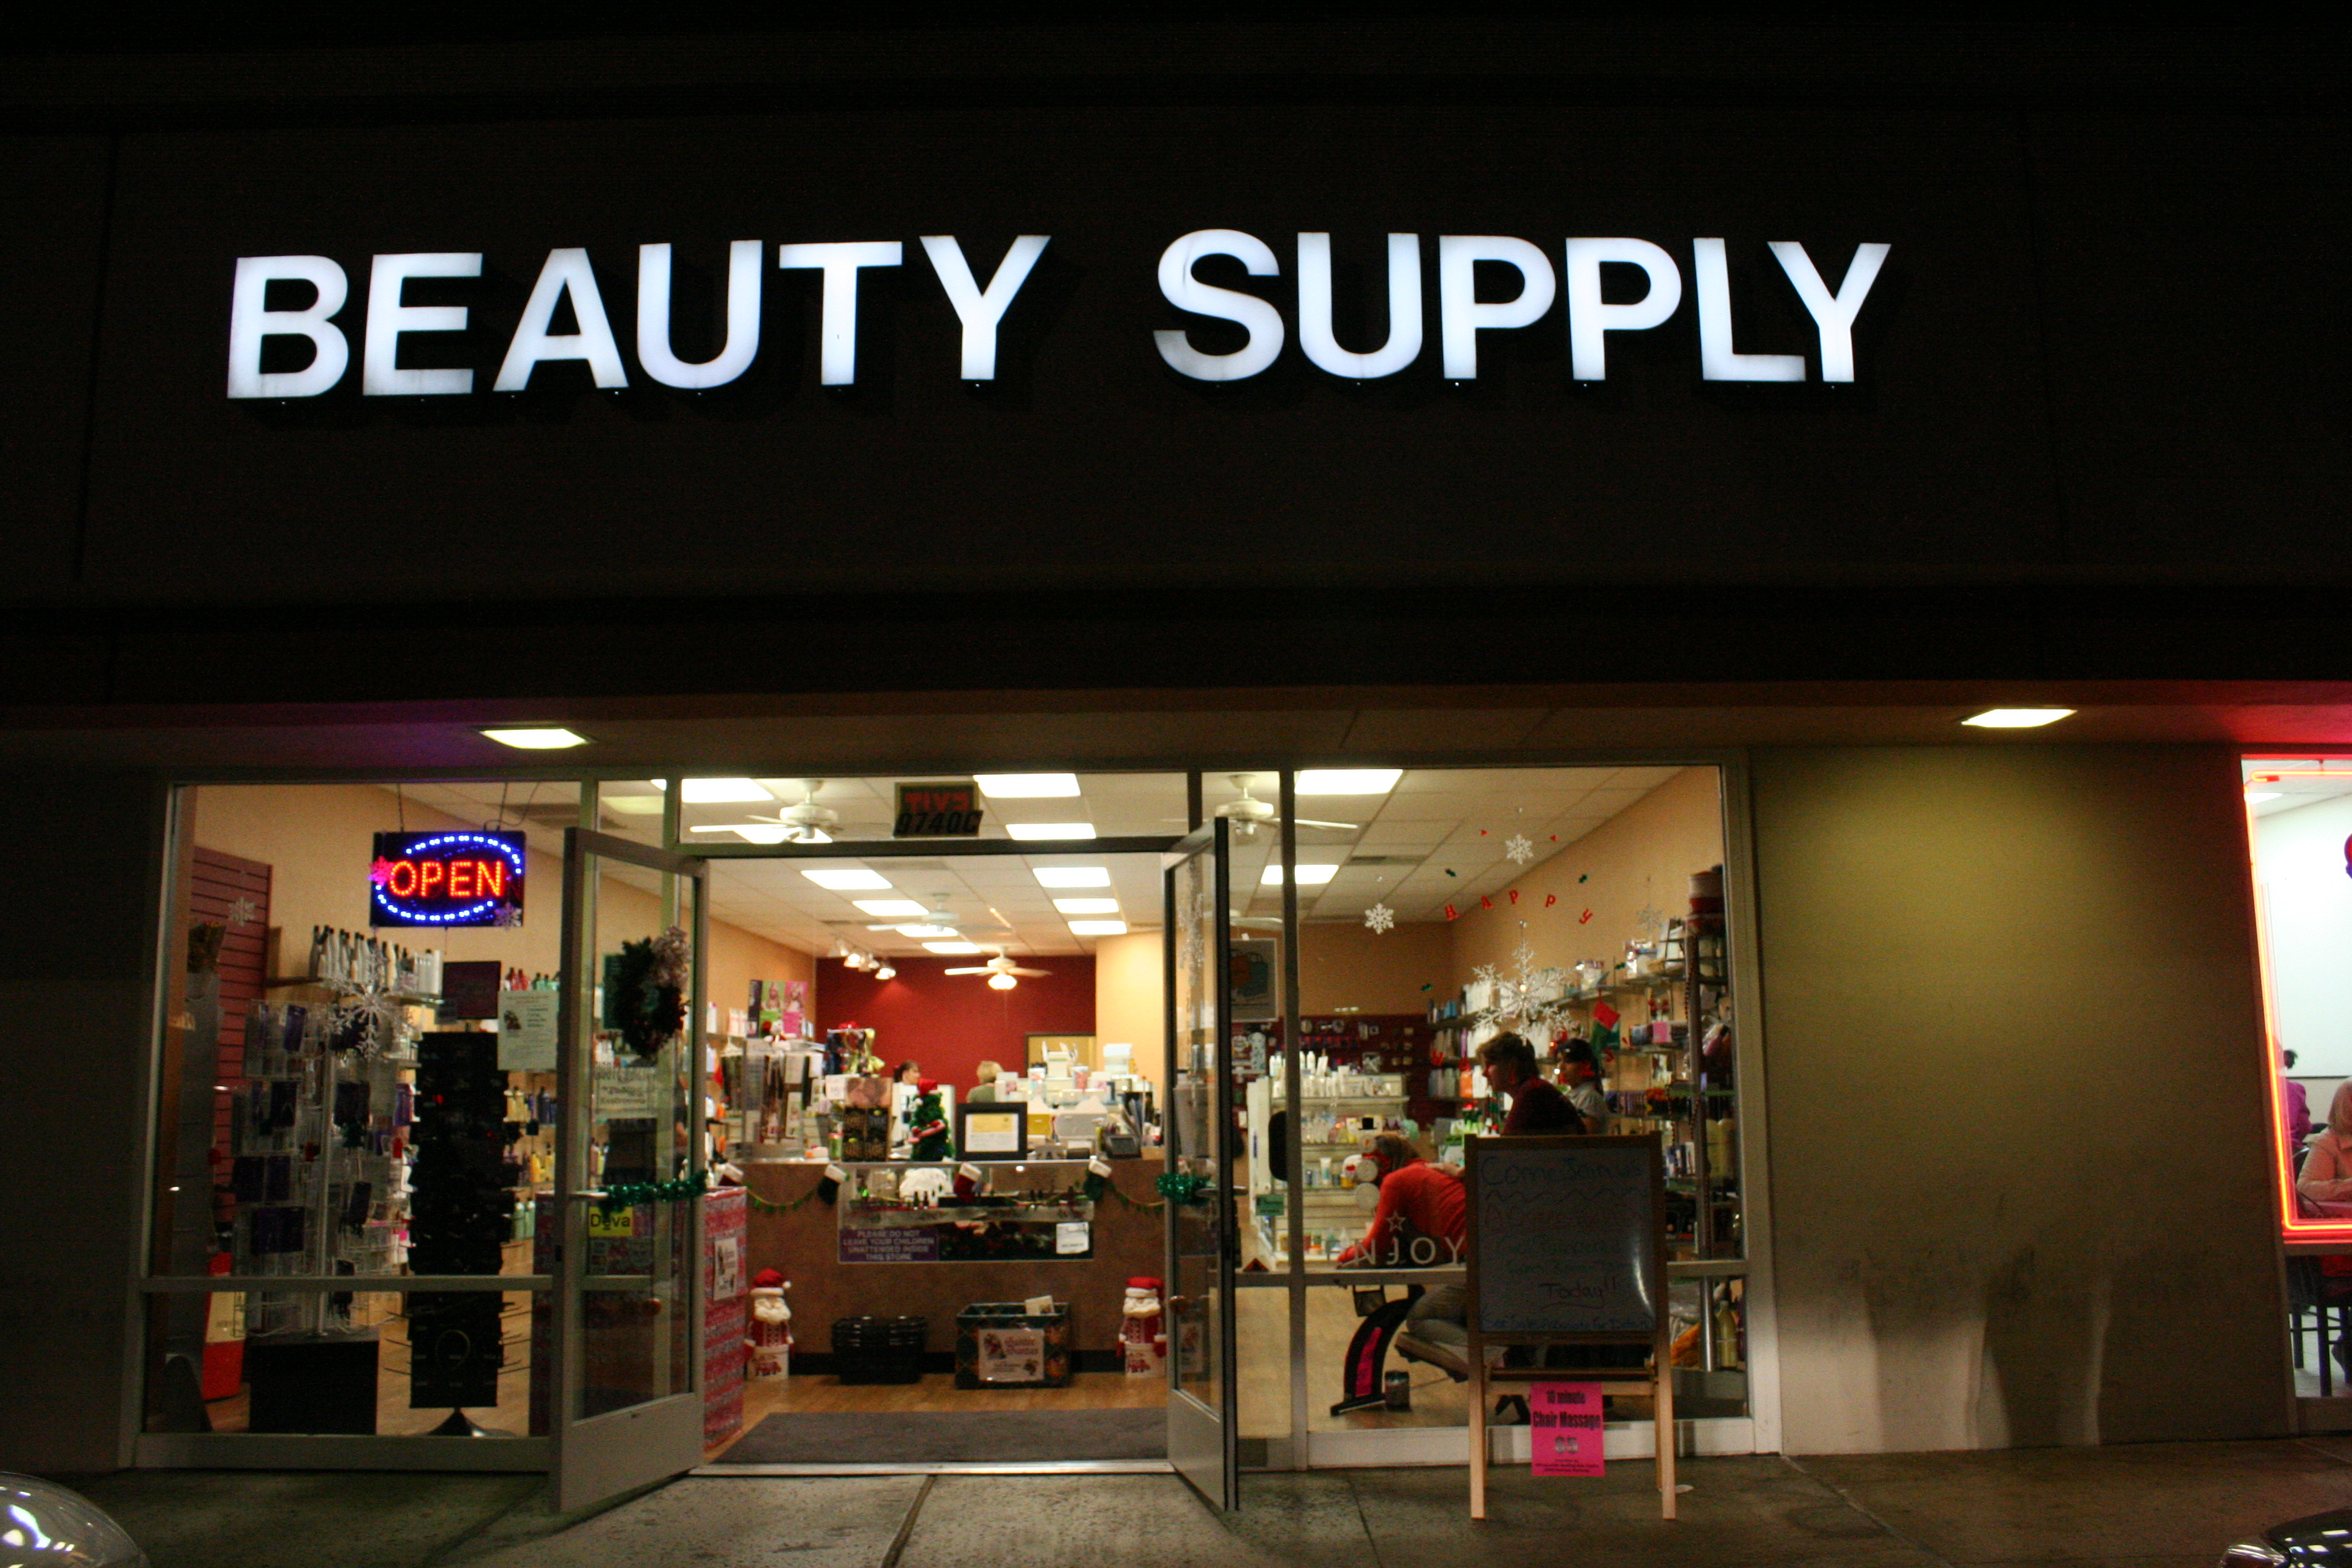 where to buy beauty supplies - How to Buy Wholesale Beauty Supplies | Intrinsics